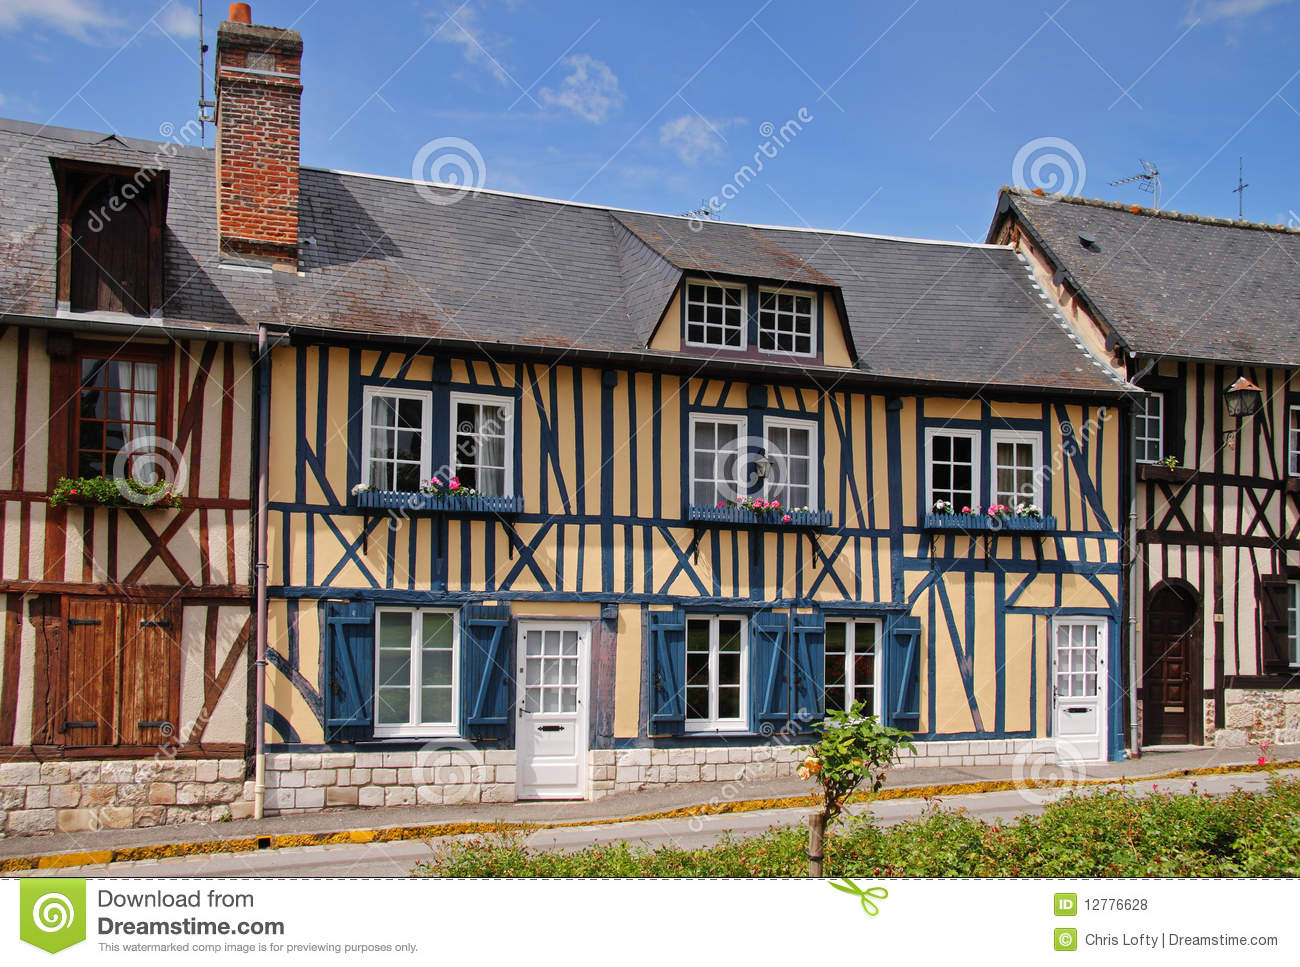 Timber Framed Normandy Houses Stock Photo Image Of Tourism French 12776628